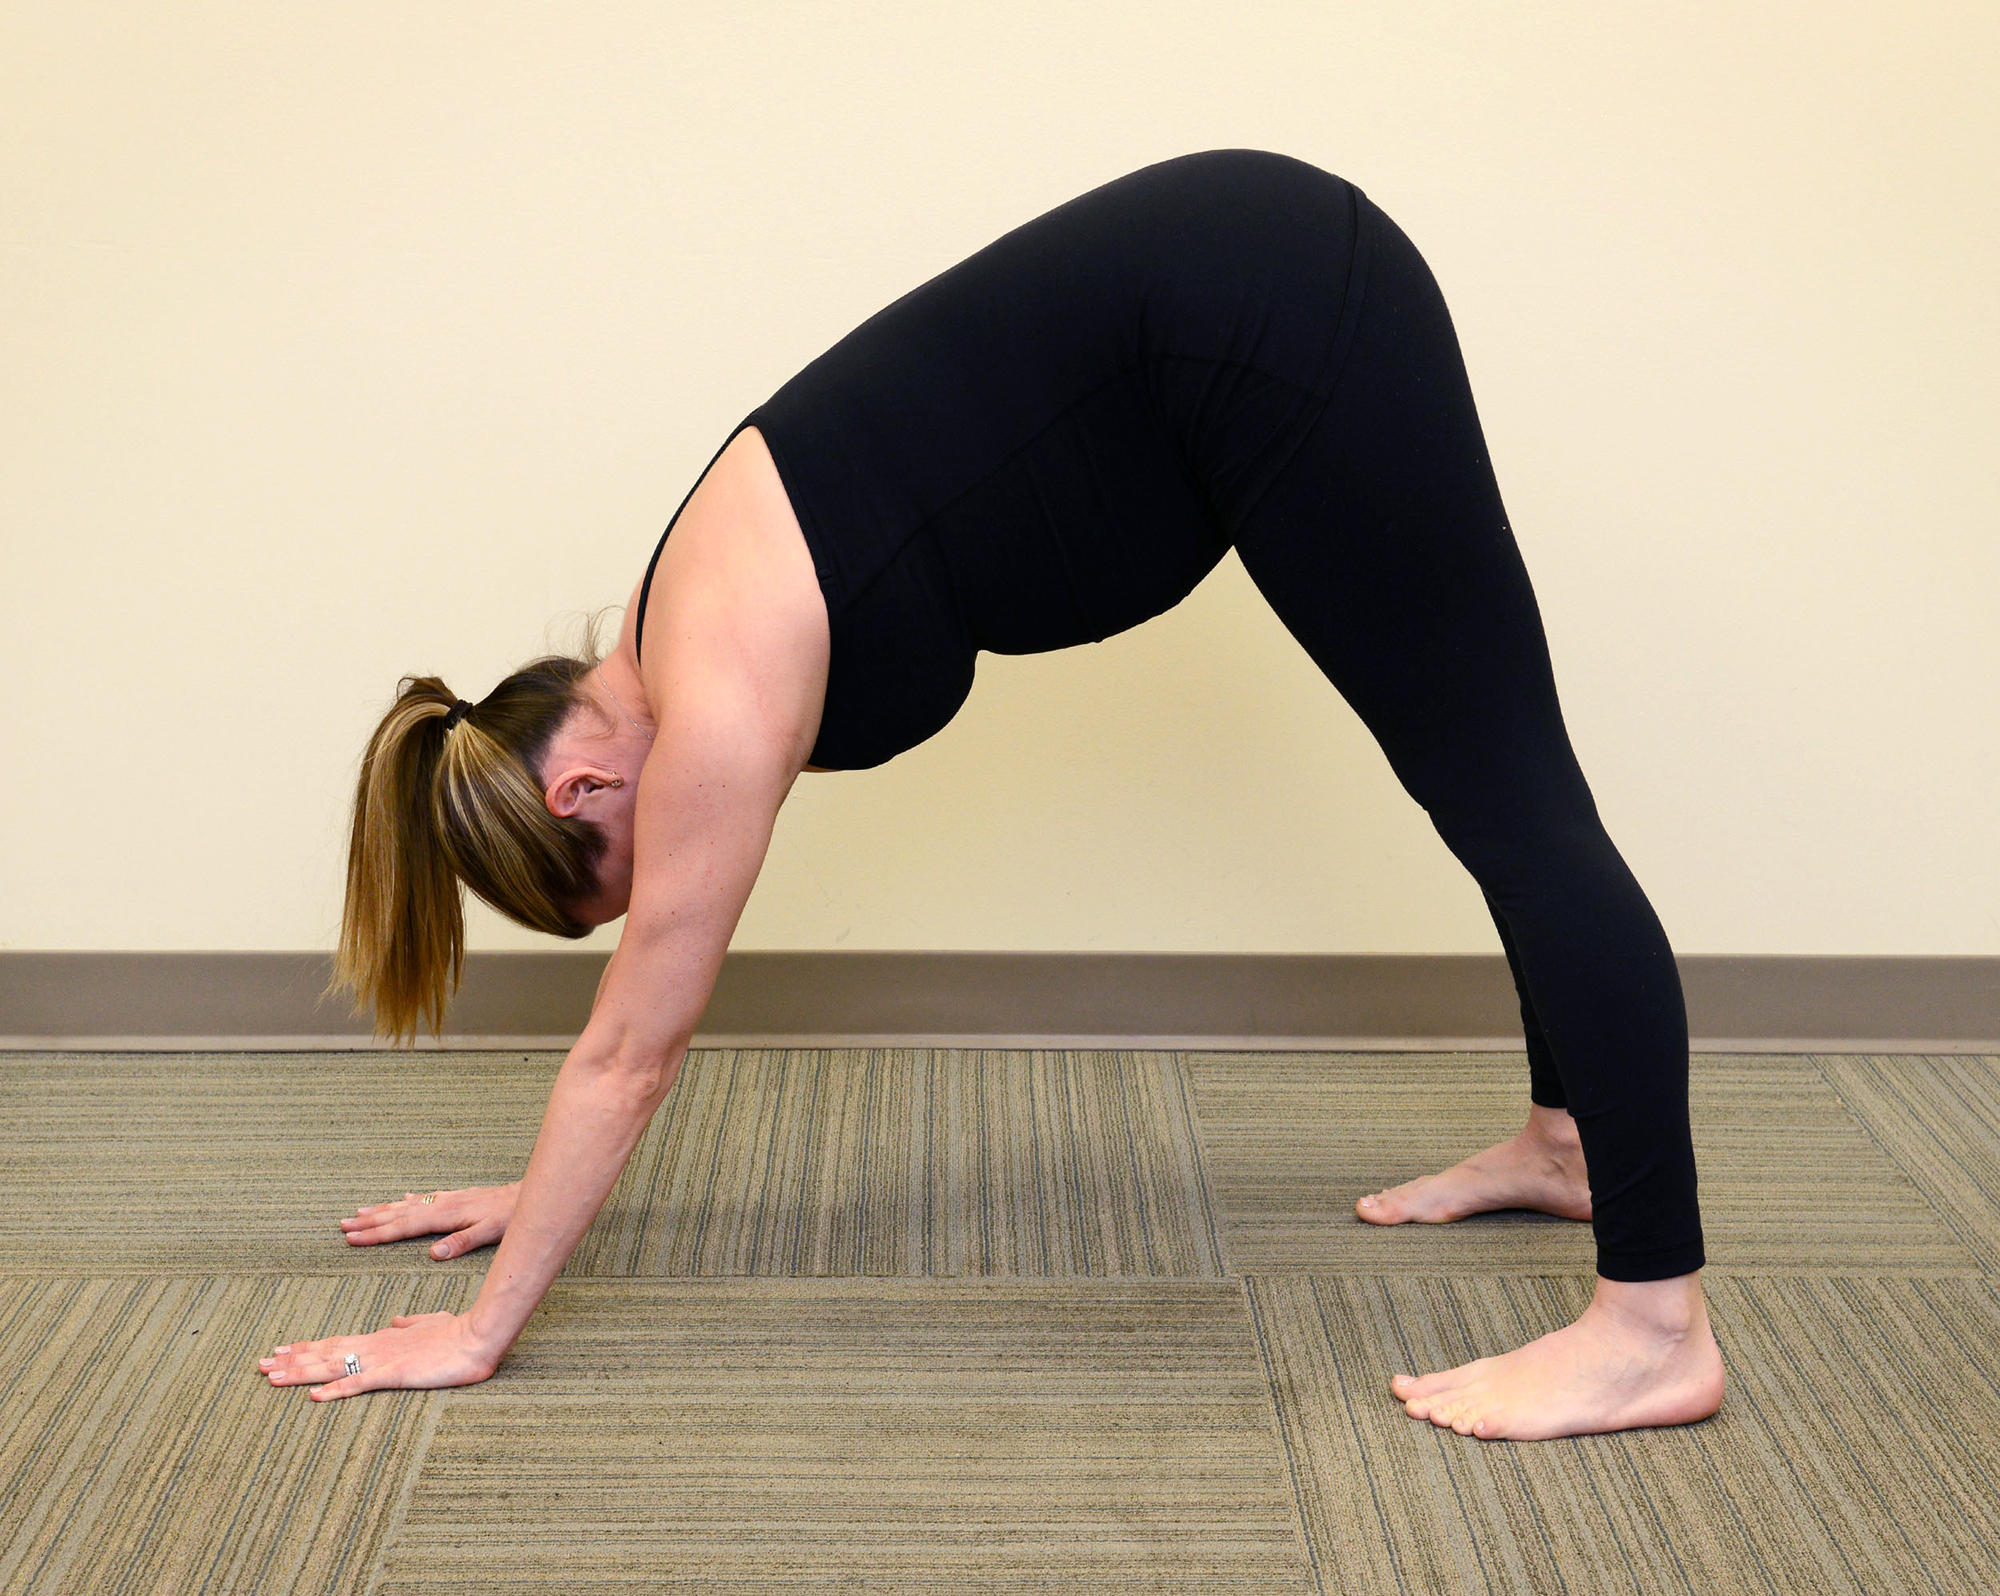 Say Yes To Down Dog More Yoga Poses Are Safe During Pregnancy Wjct News